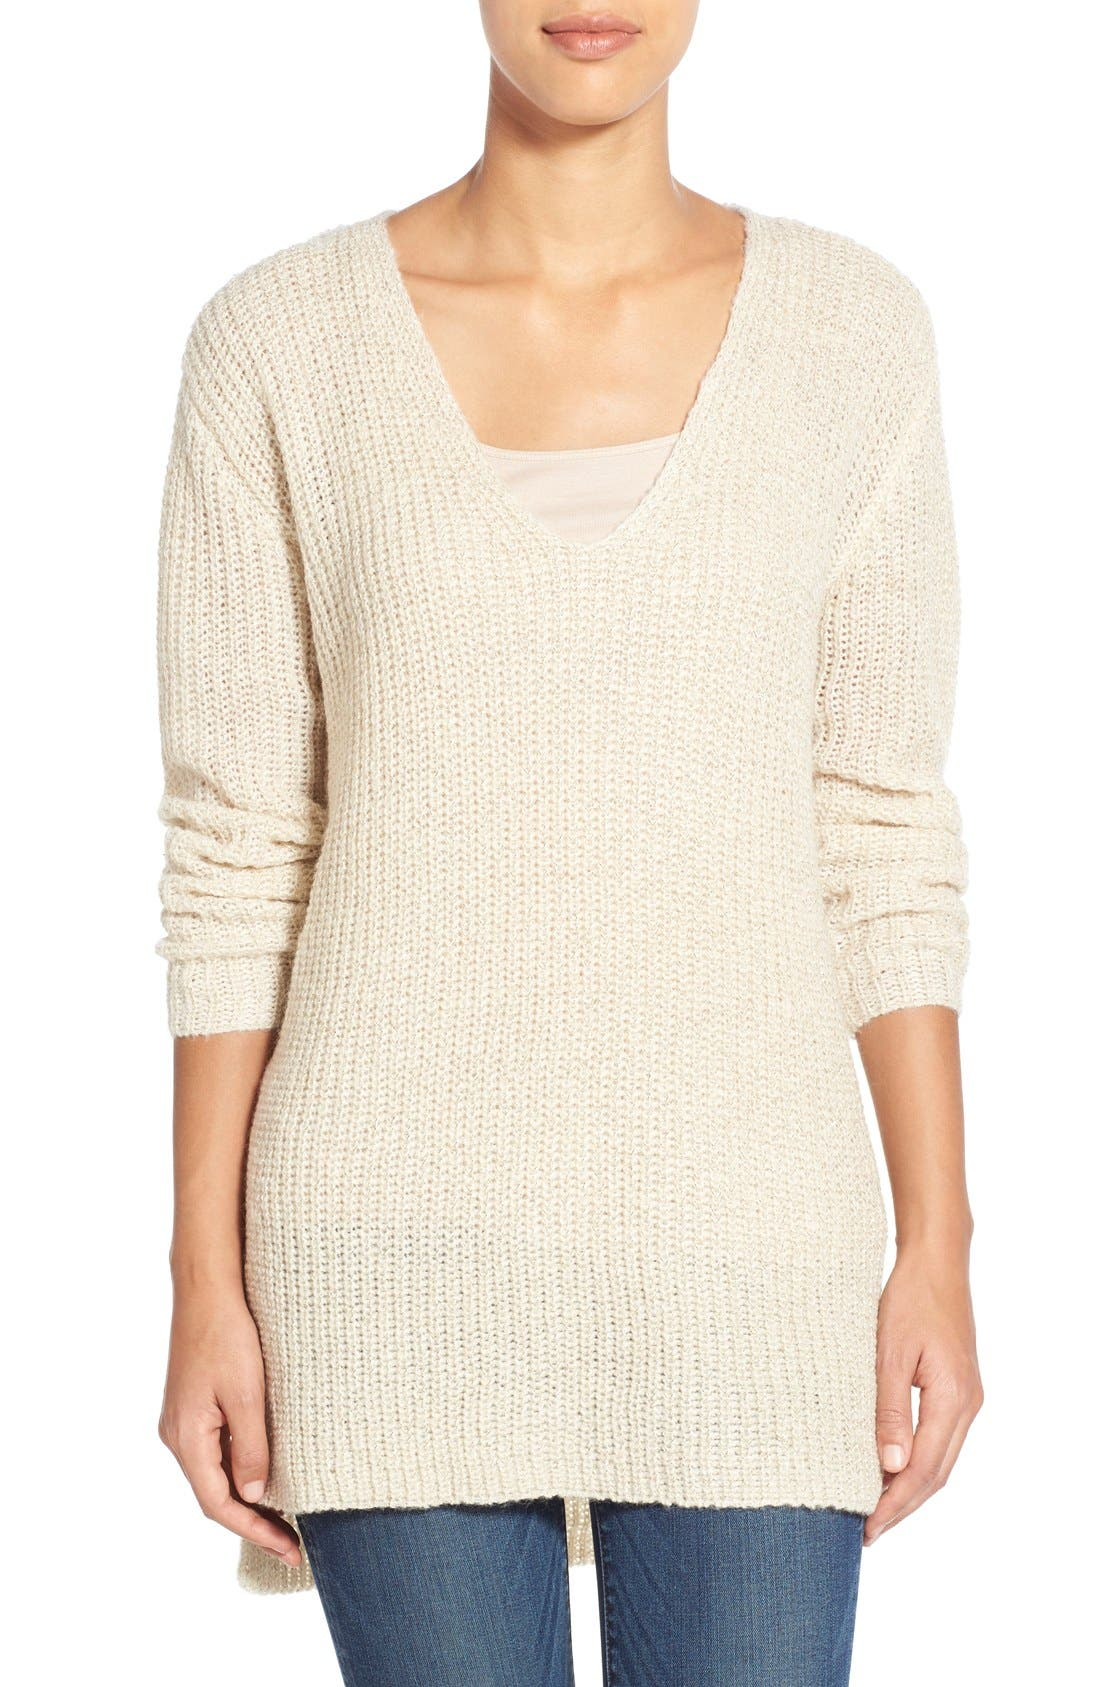 Main Image - Two by Vince Camuto Metallic Flecked V-Neck Sweater